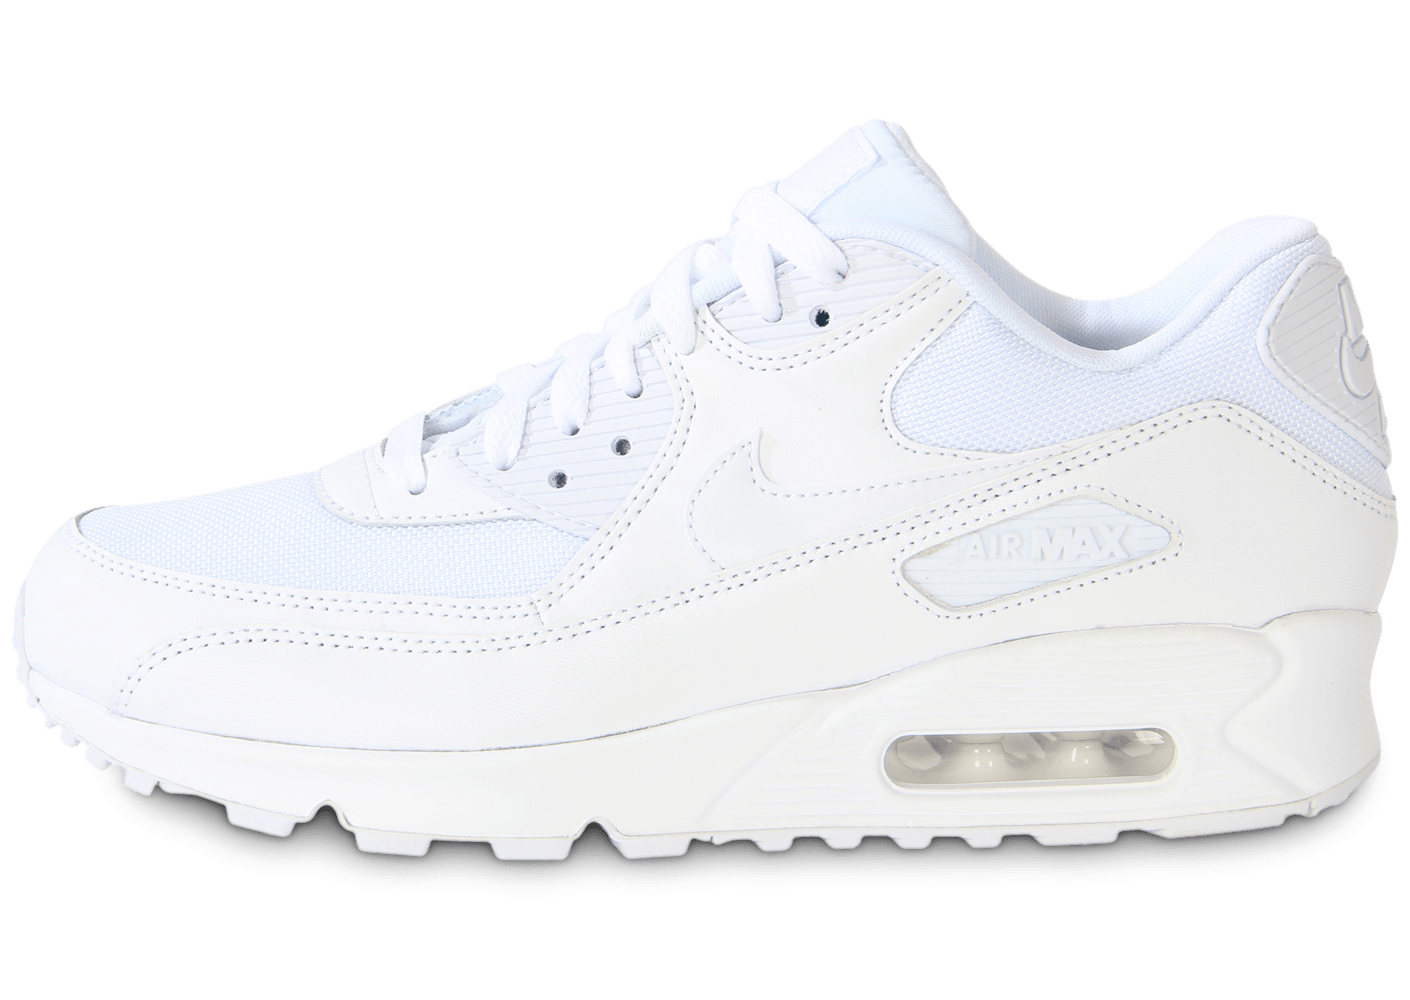 nike air max 90 essential blanche chaussures homme chausport. Black Bedroom Furniture Sets. Home Design Ideas